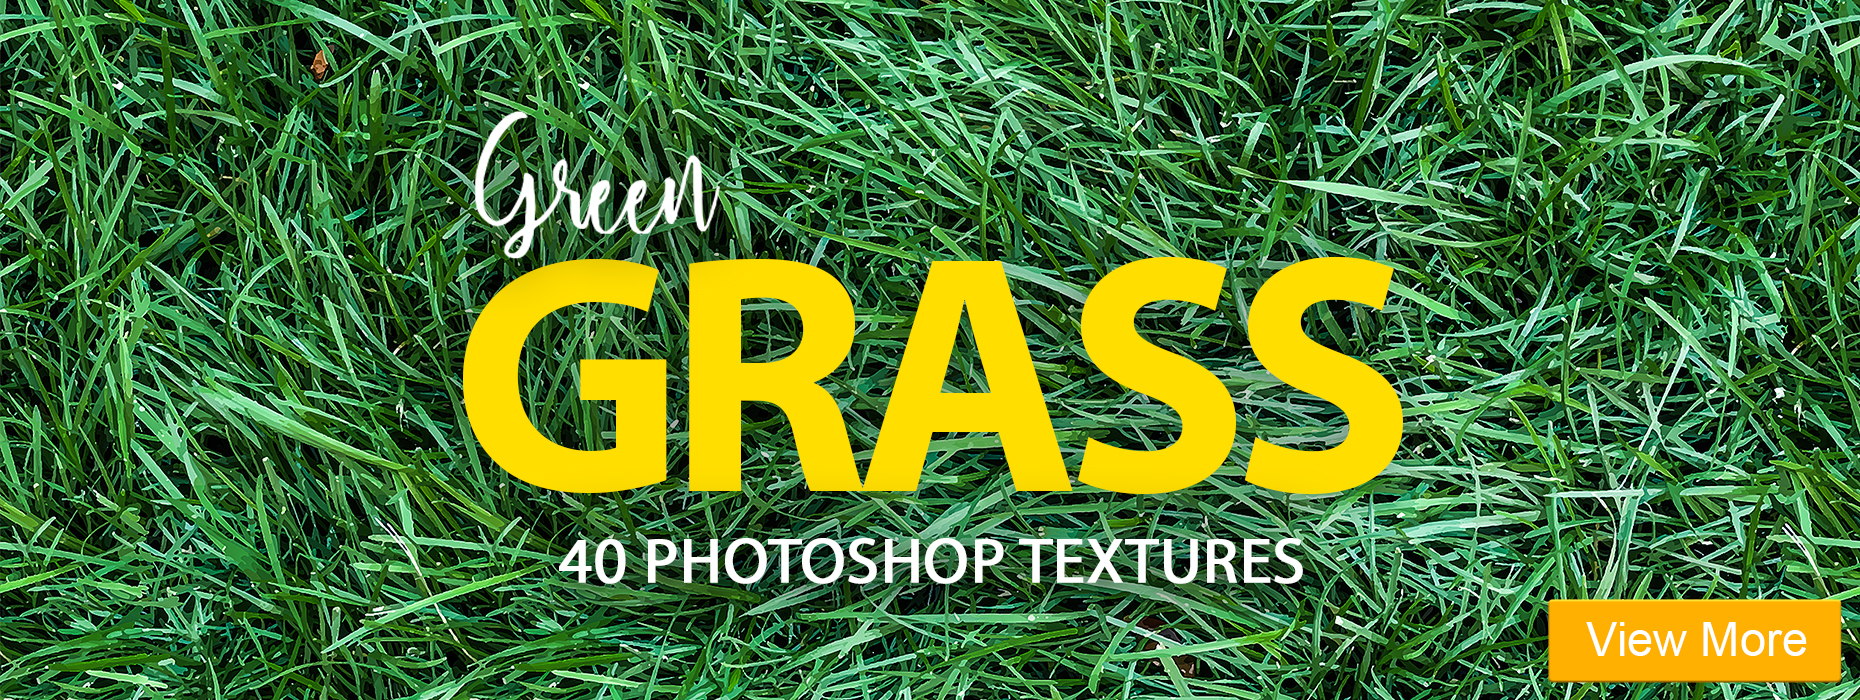 grass texture free photoshop vintage portrait lightroom presets banner girl